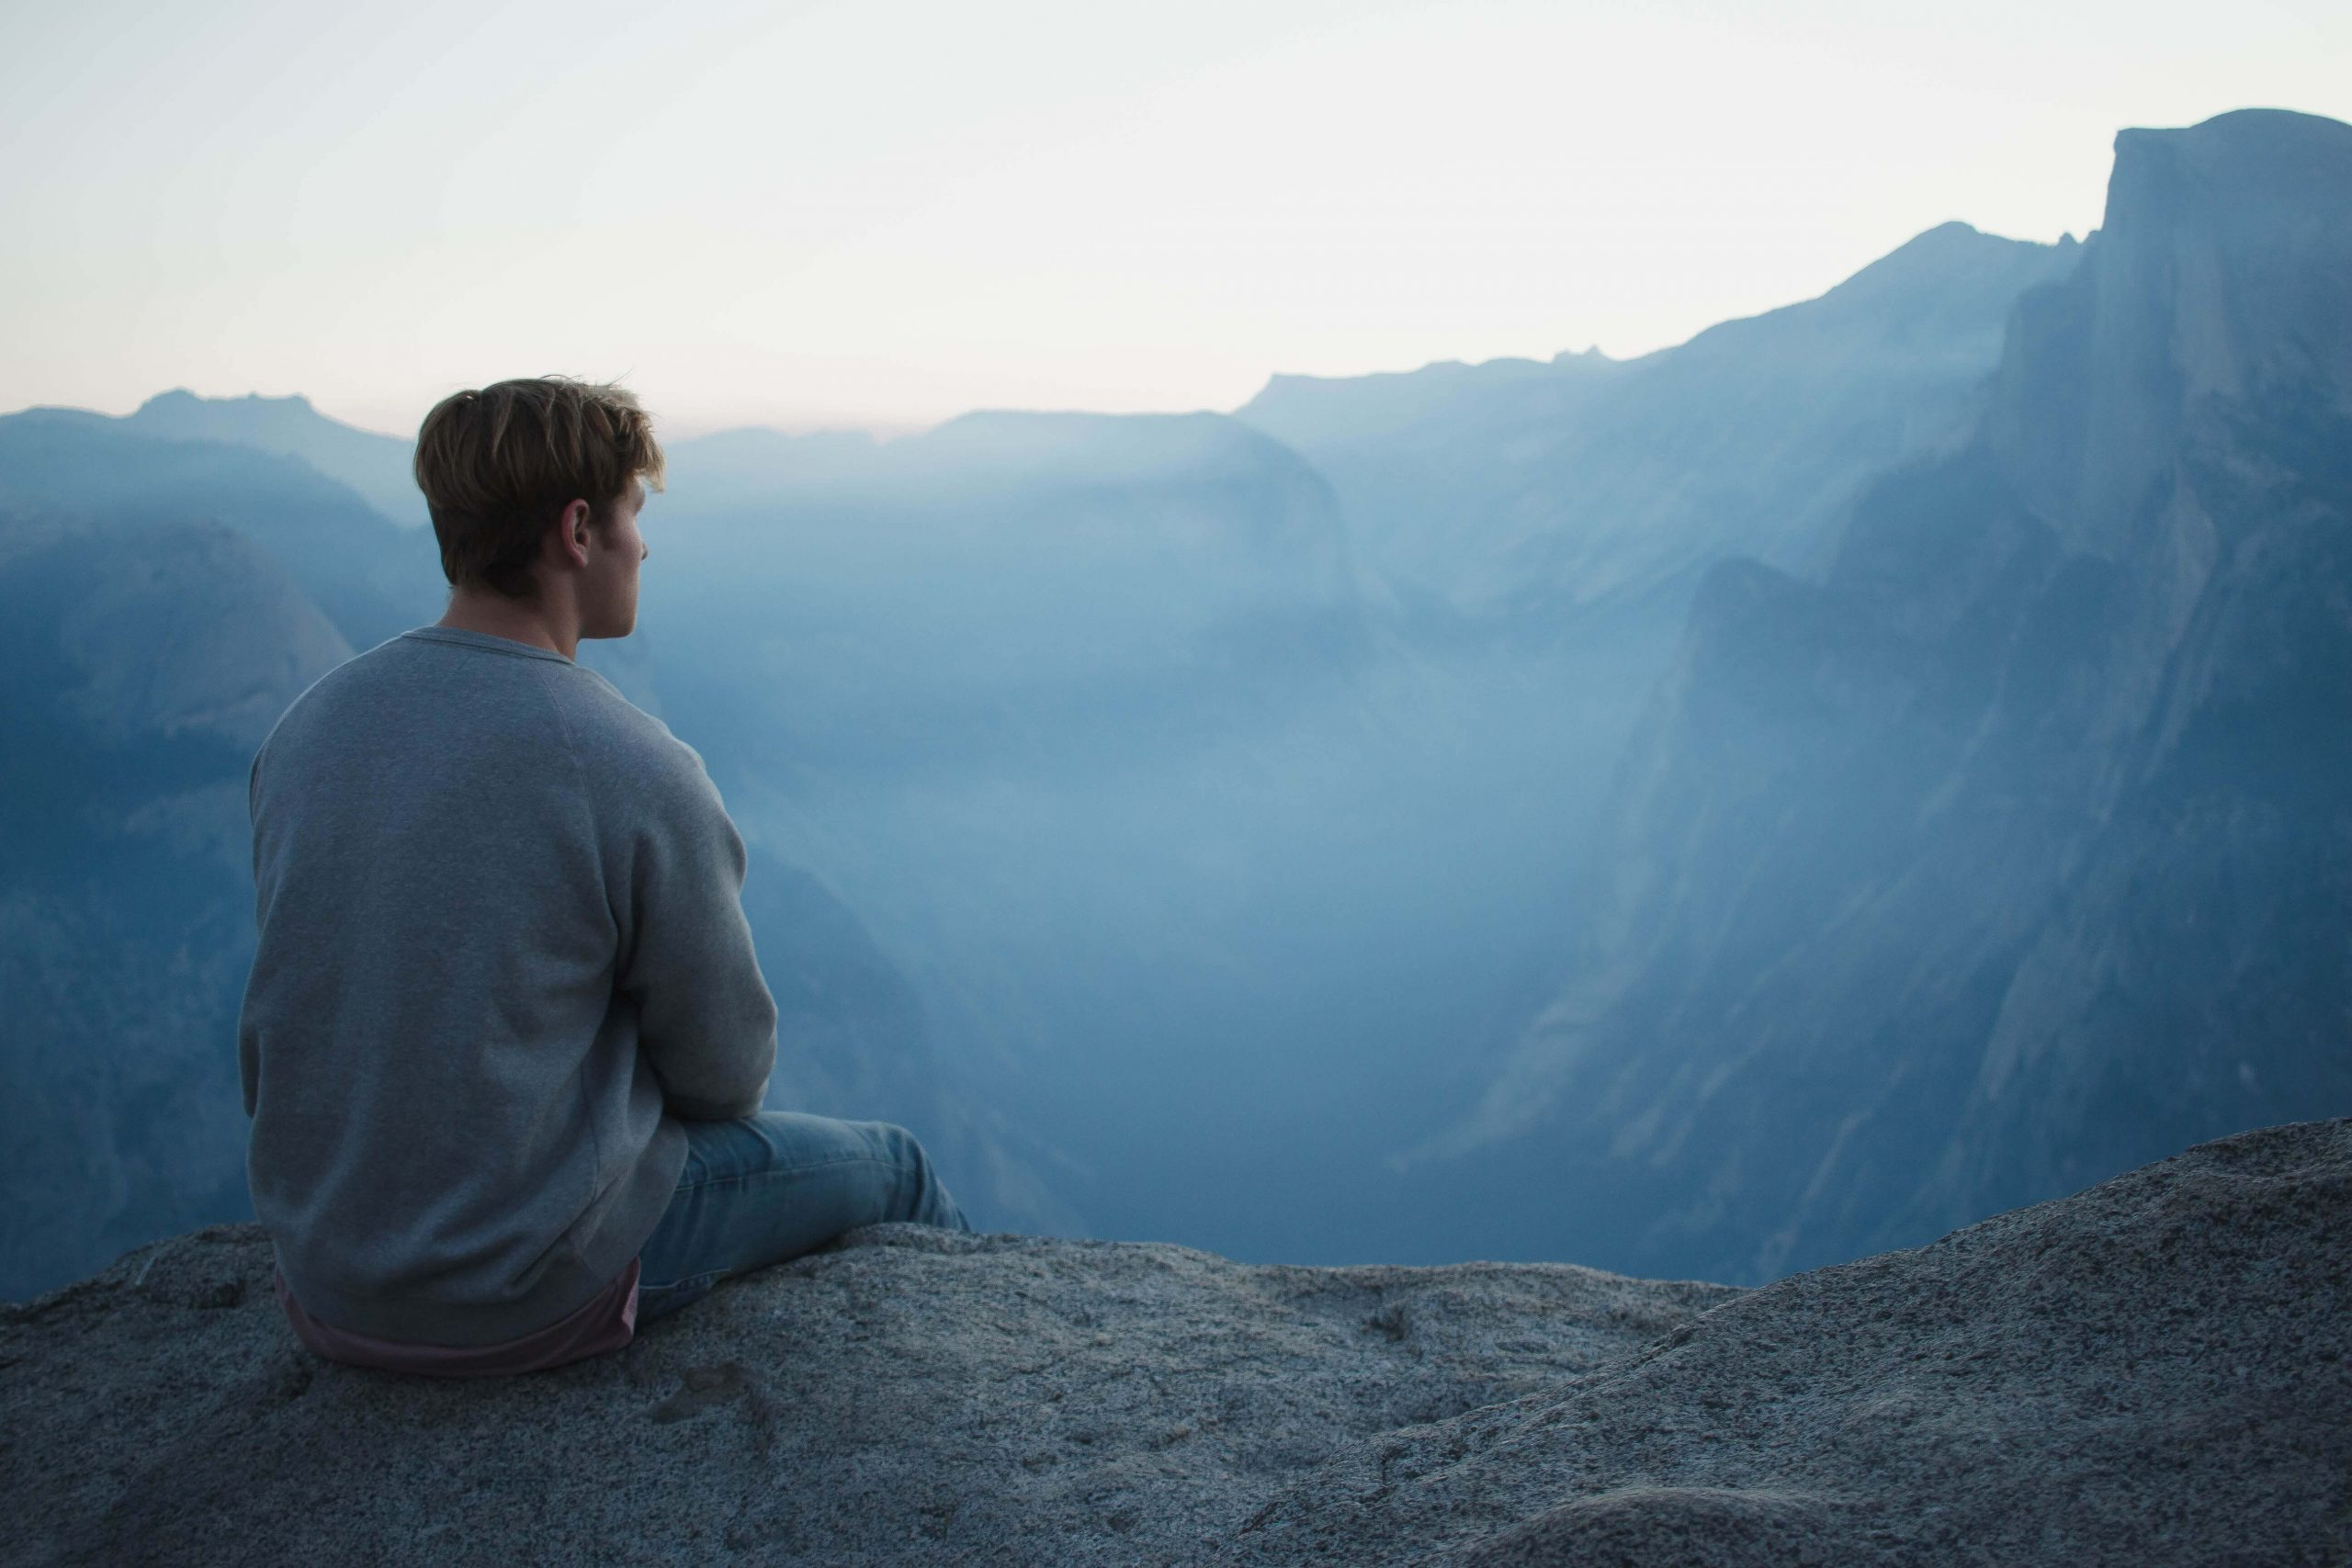 lifestyle meditation and exercise helps with anxiety